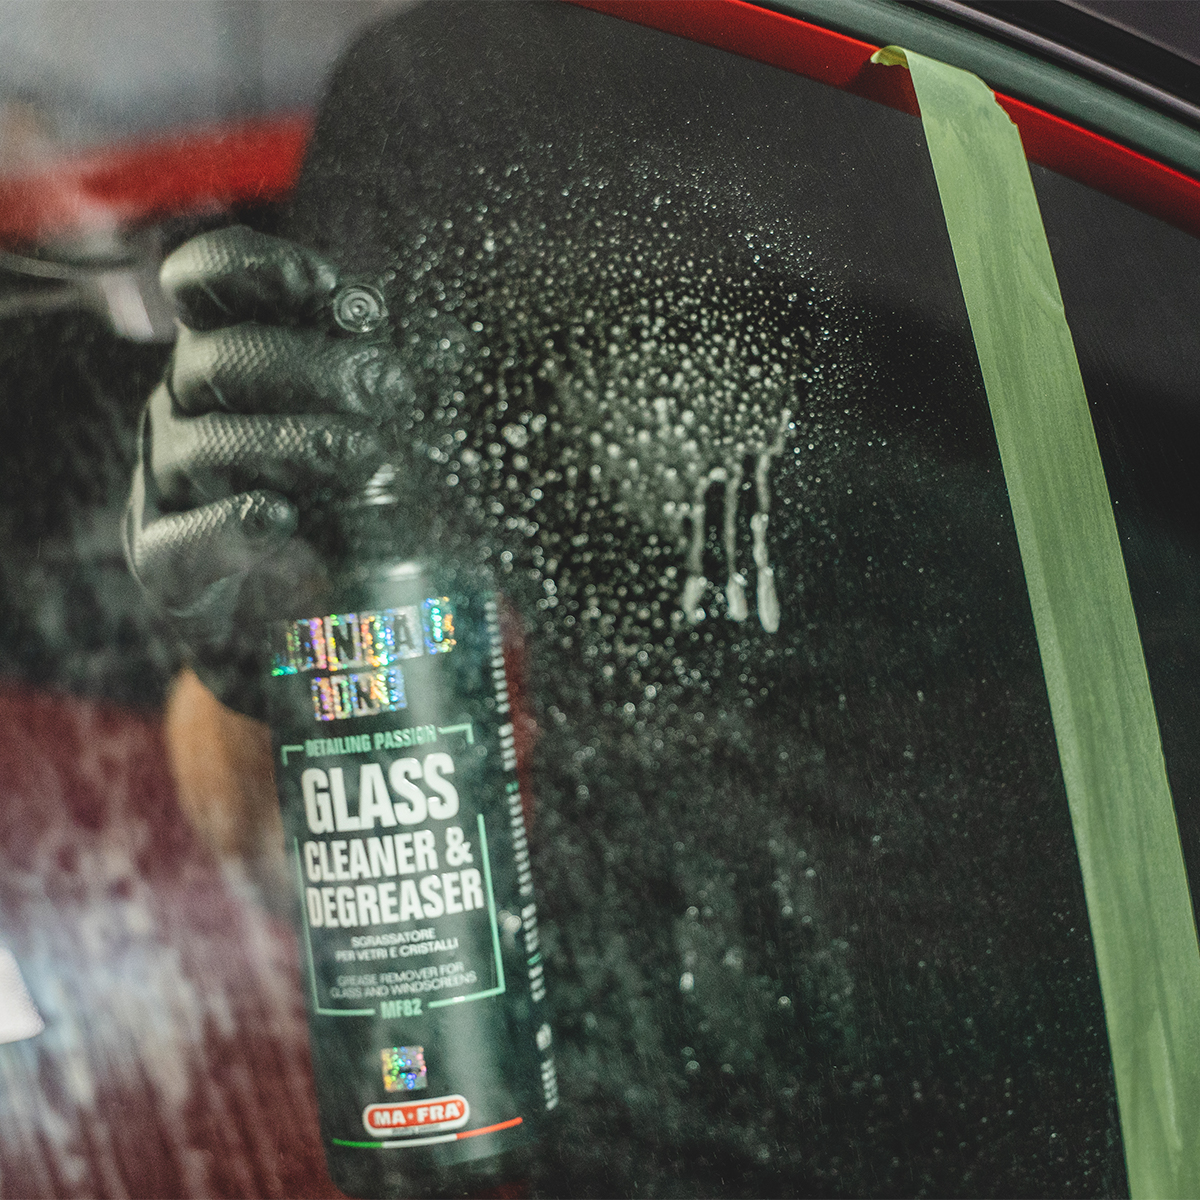 Erogare Glass Cleaner & Degreaser sulla superficie